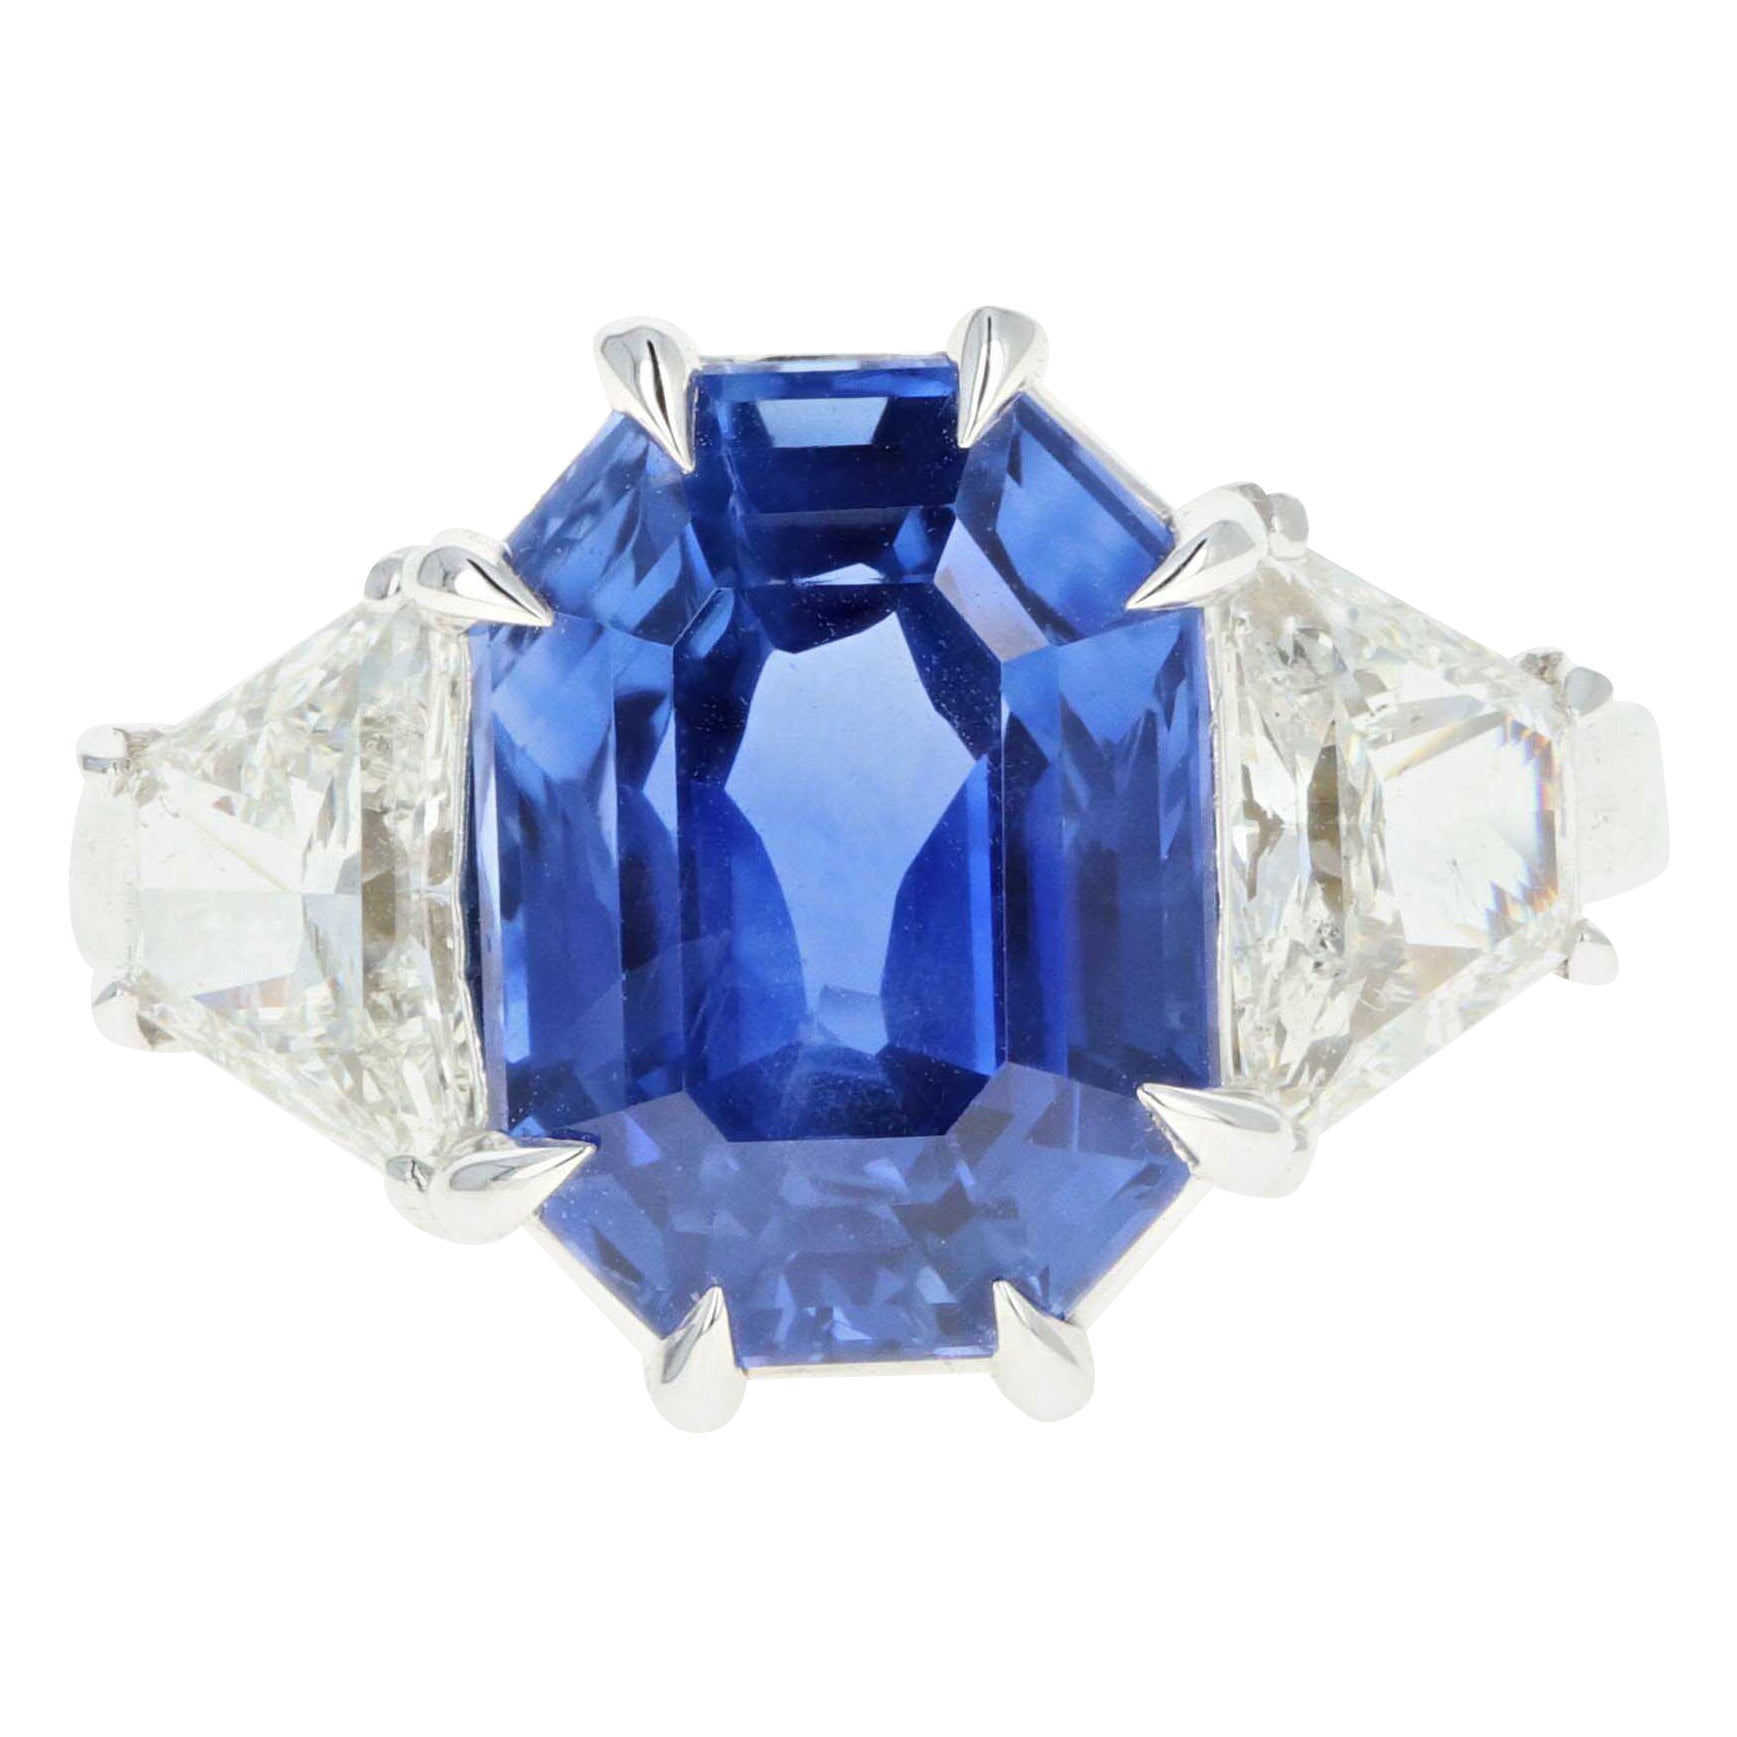 Platinum 10.69 Carat No Heat Ceylon Sapphire and Diamond Ring